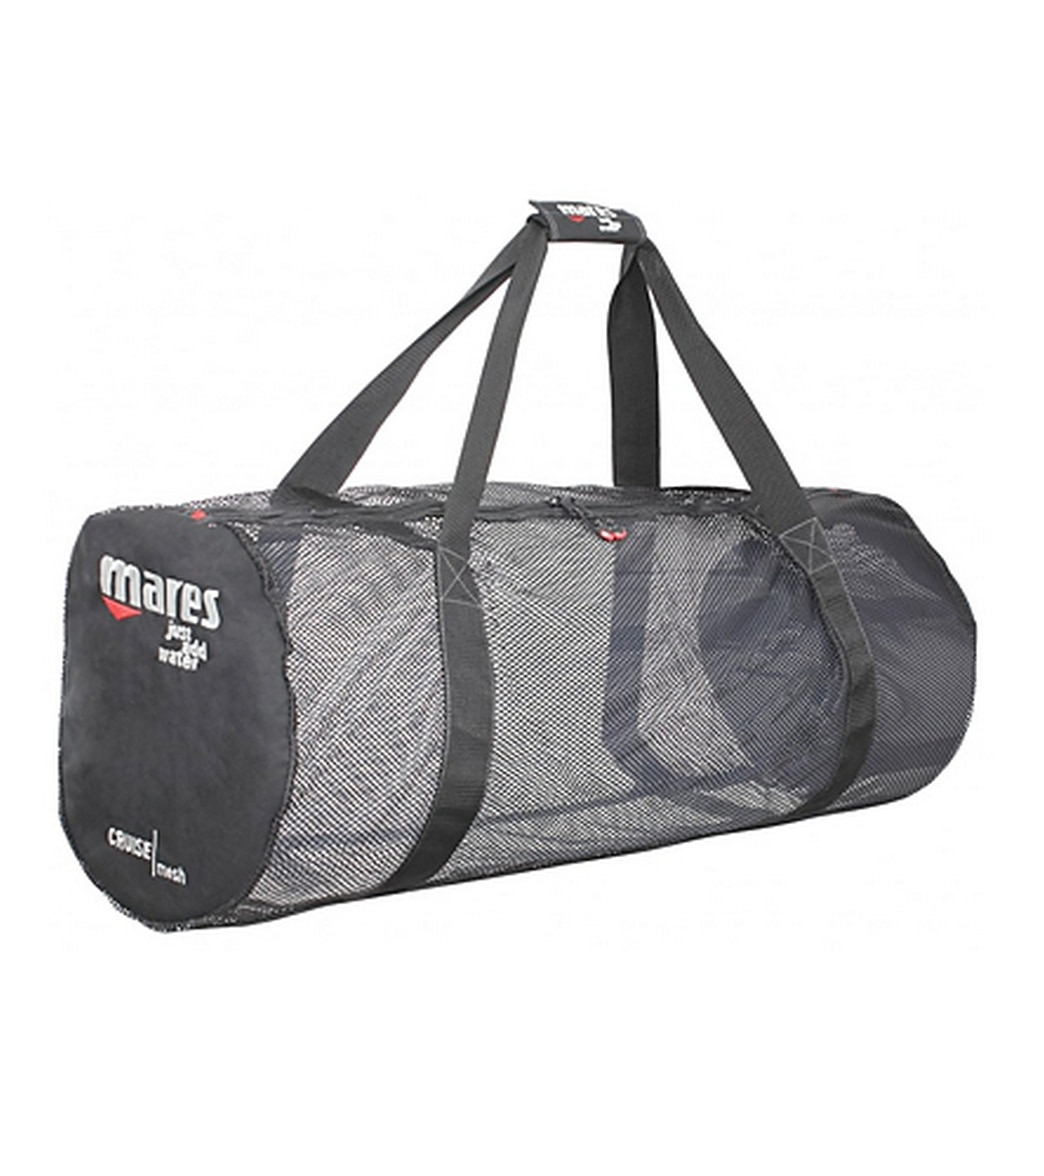 Mares Cruise Mesh Duffle Dive Bag at SwimOutlet.com - Free Shipping